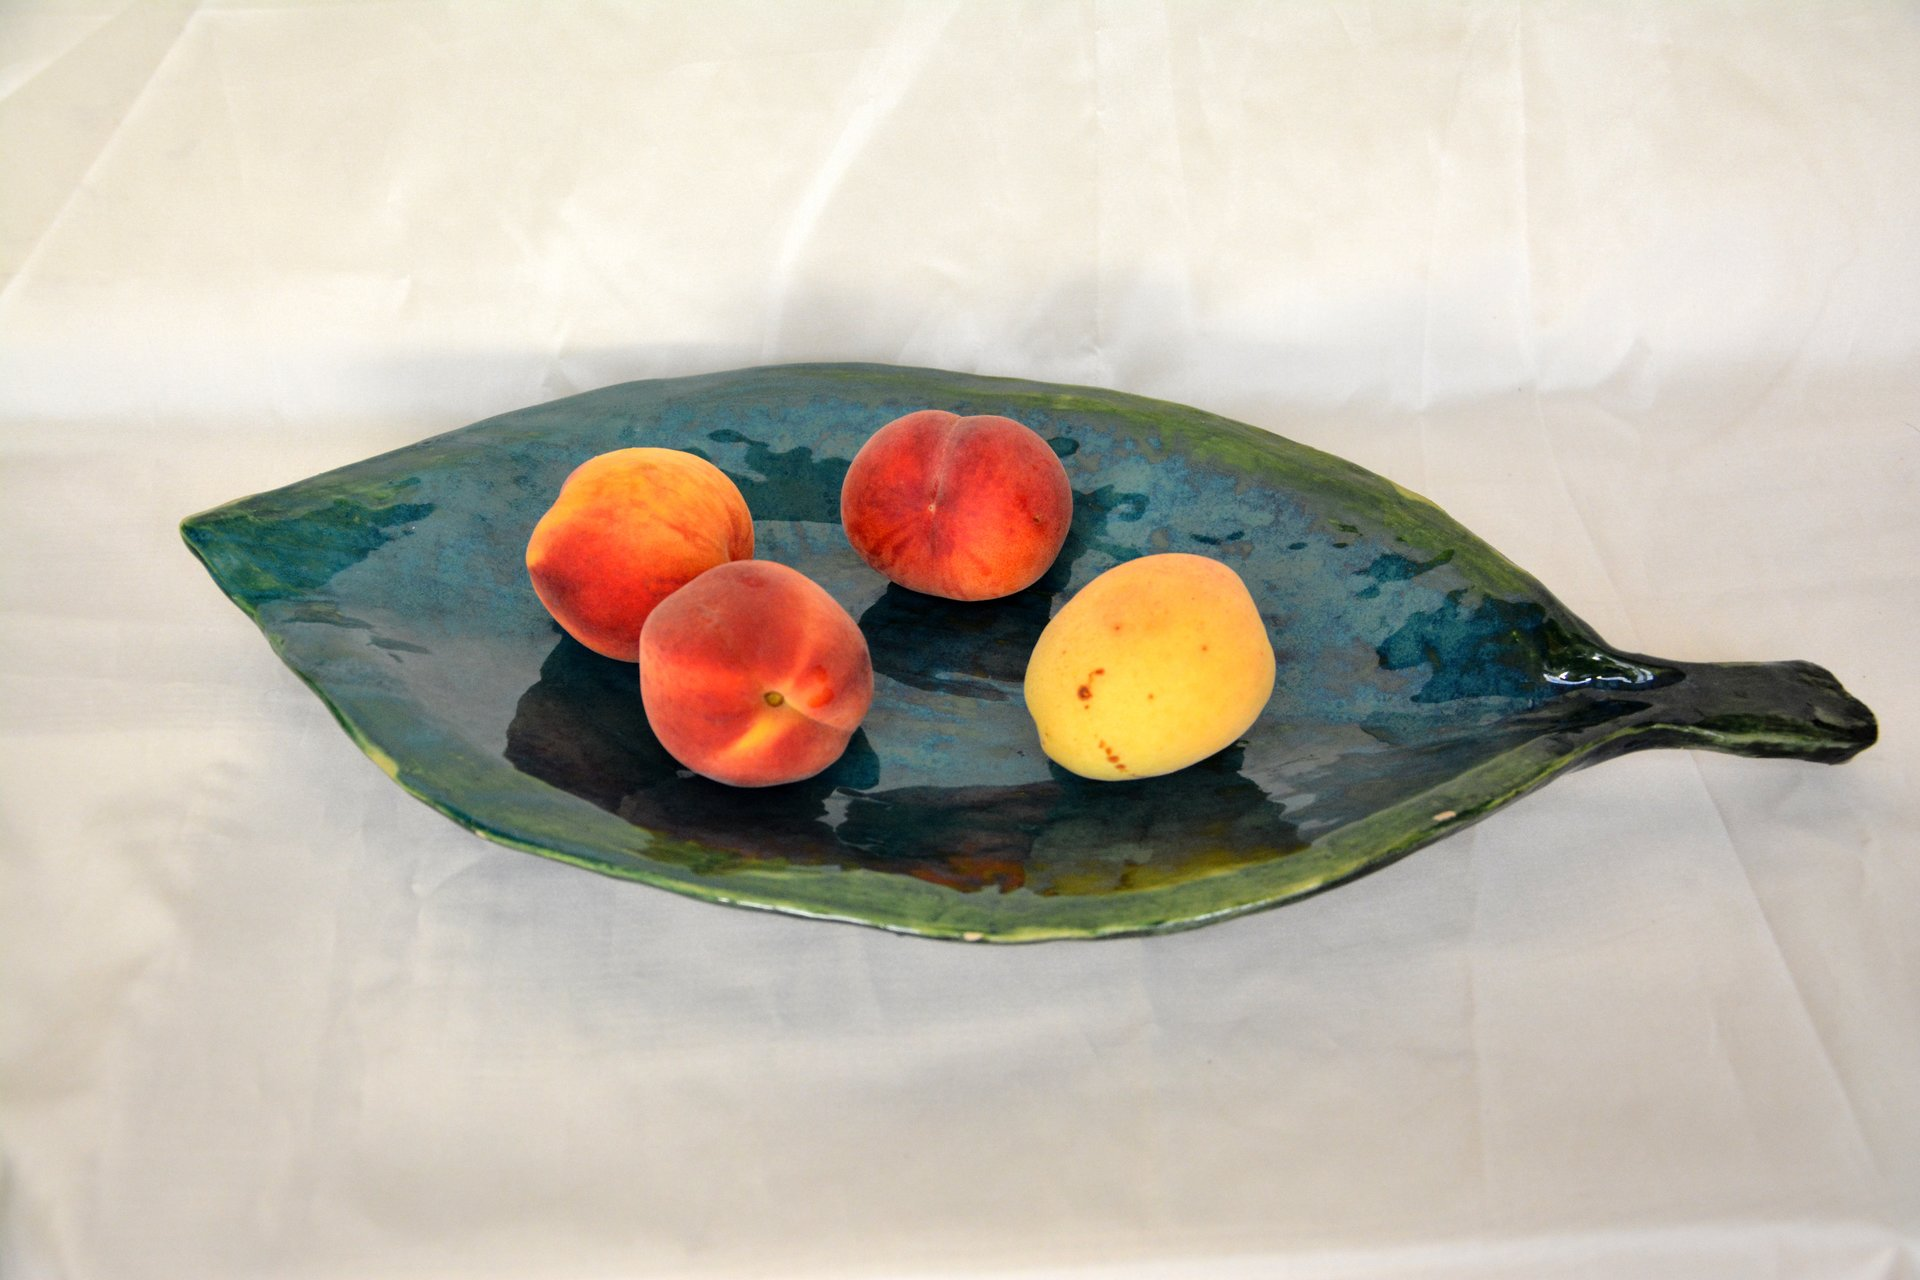 Fruit dish Leaf - Ceramic dishes, 46 * 23 cm, photo 3 of 3.